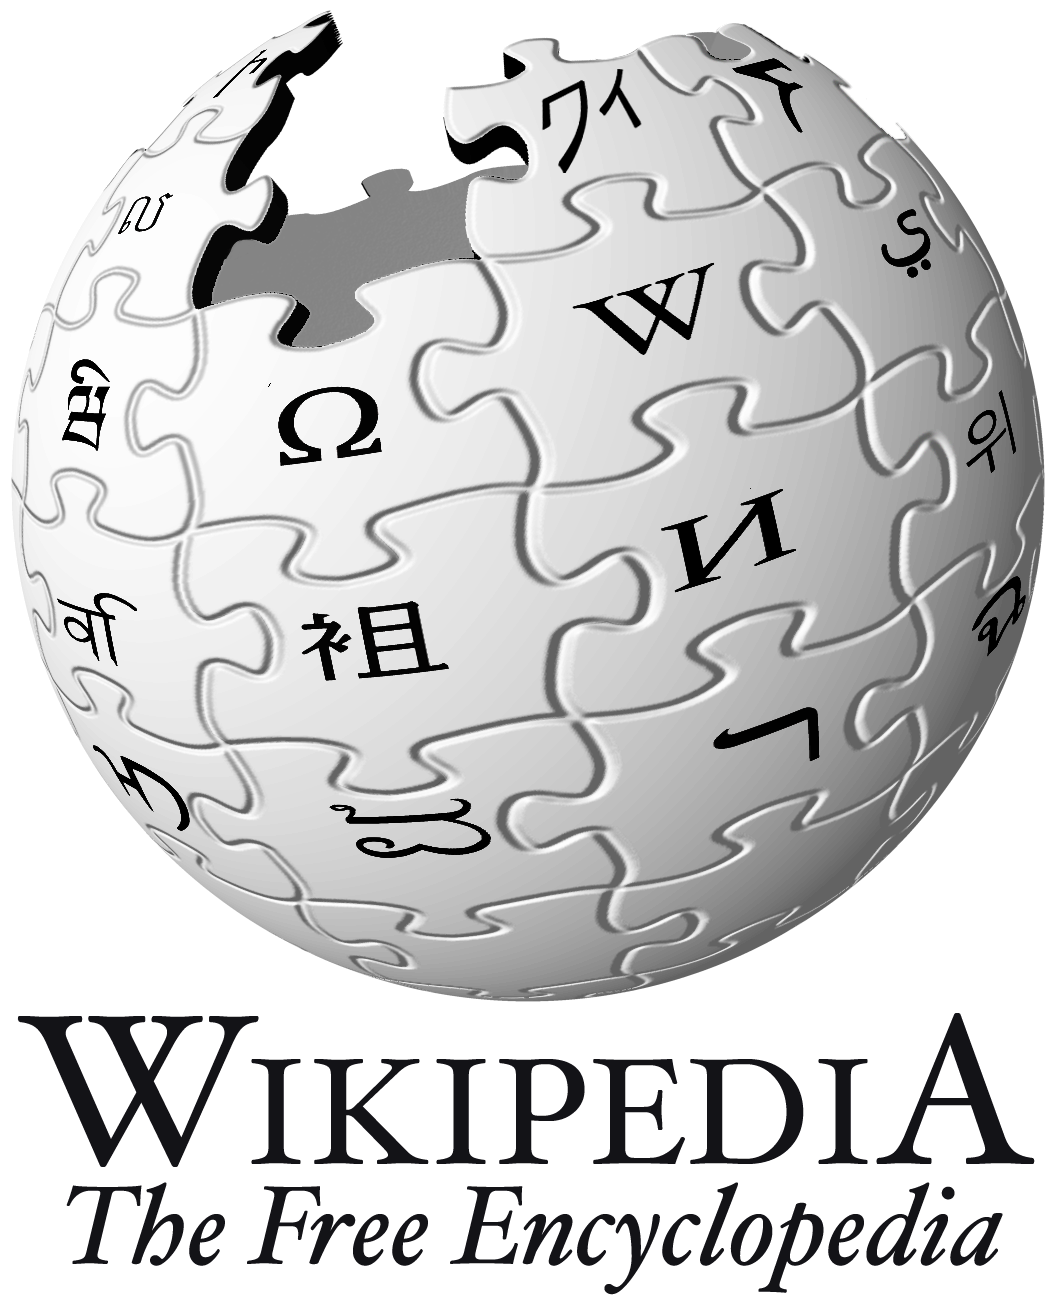 File:Old version of the Wikipedia logo used until 2010 (big ...